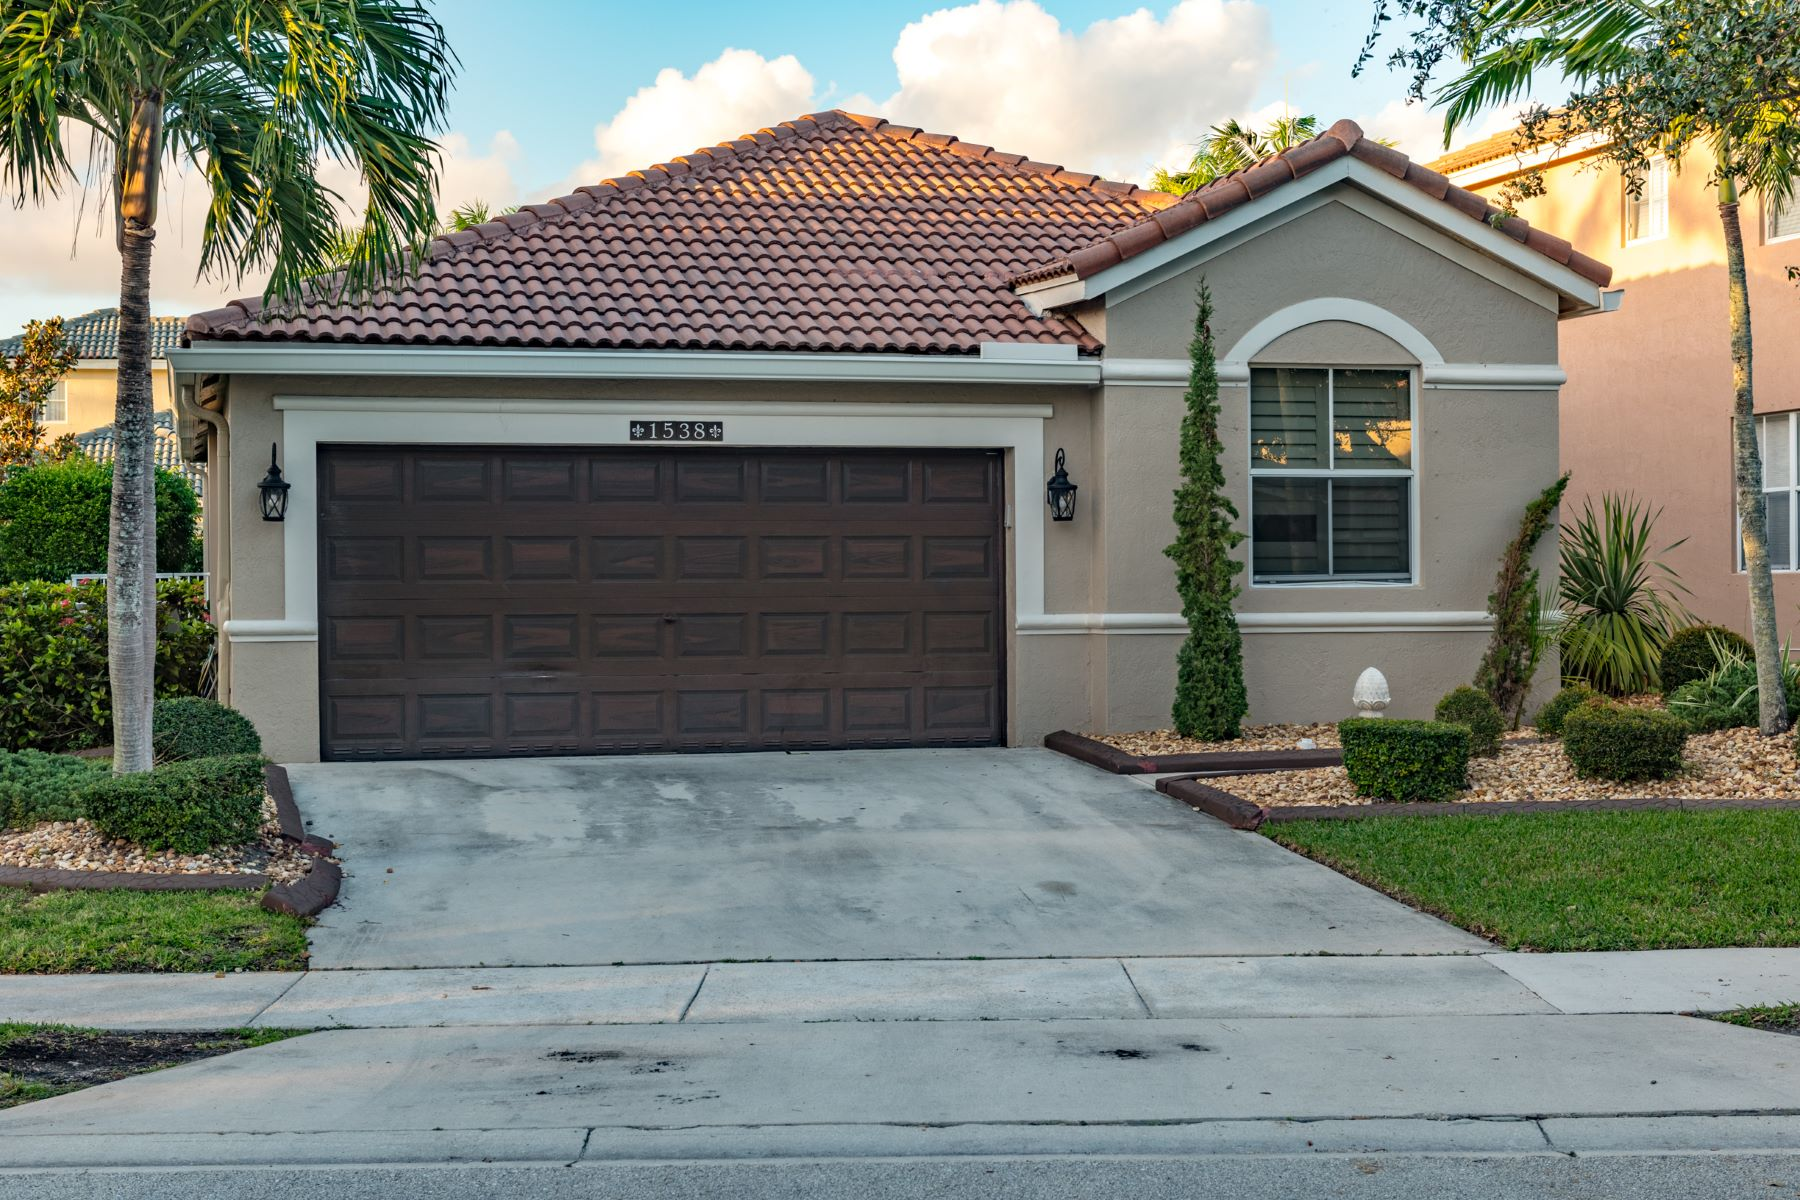 Single Family Home for Rent at 1538 Winterberry Ln 1538 Winterberry Ln Weston, Florida 33327 United States